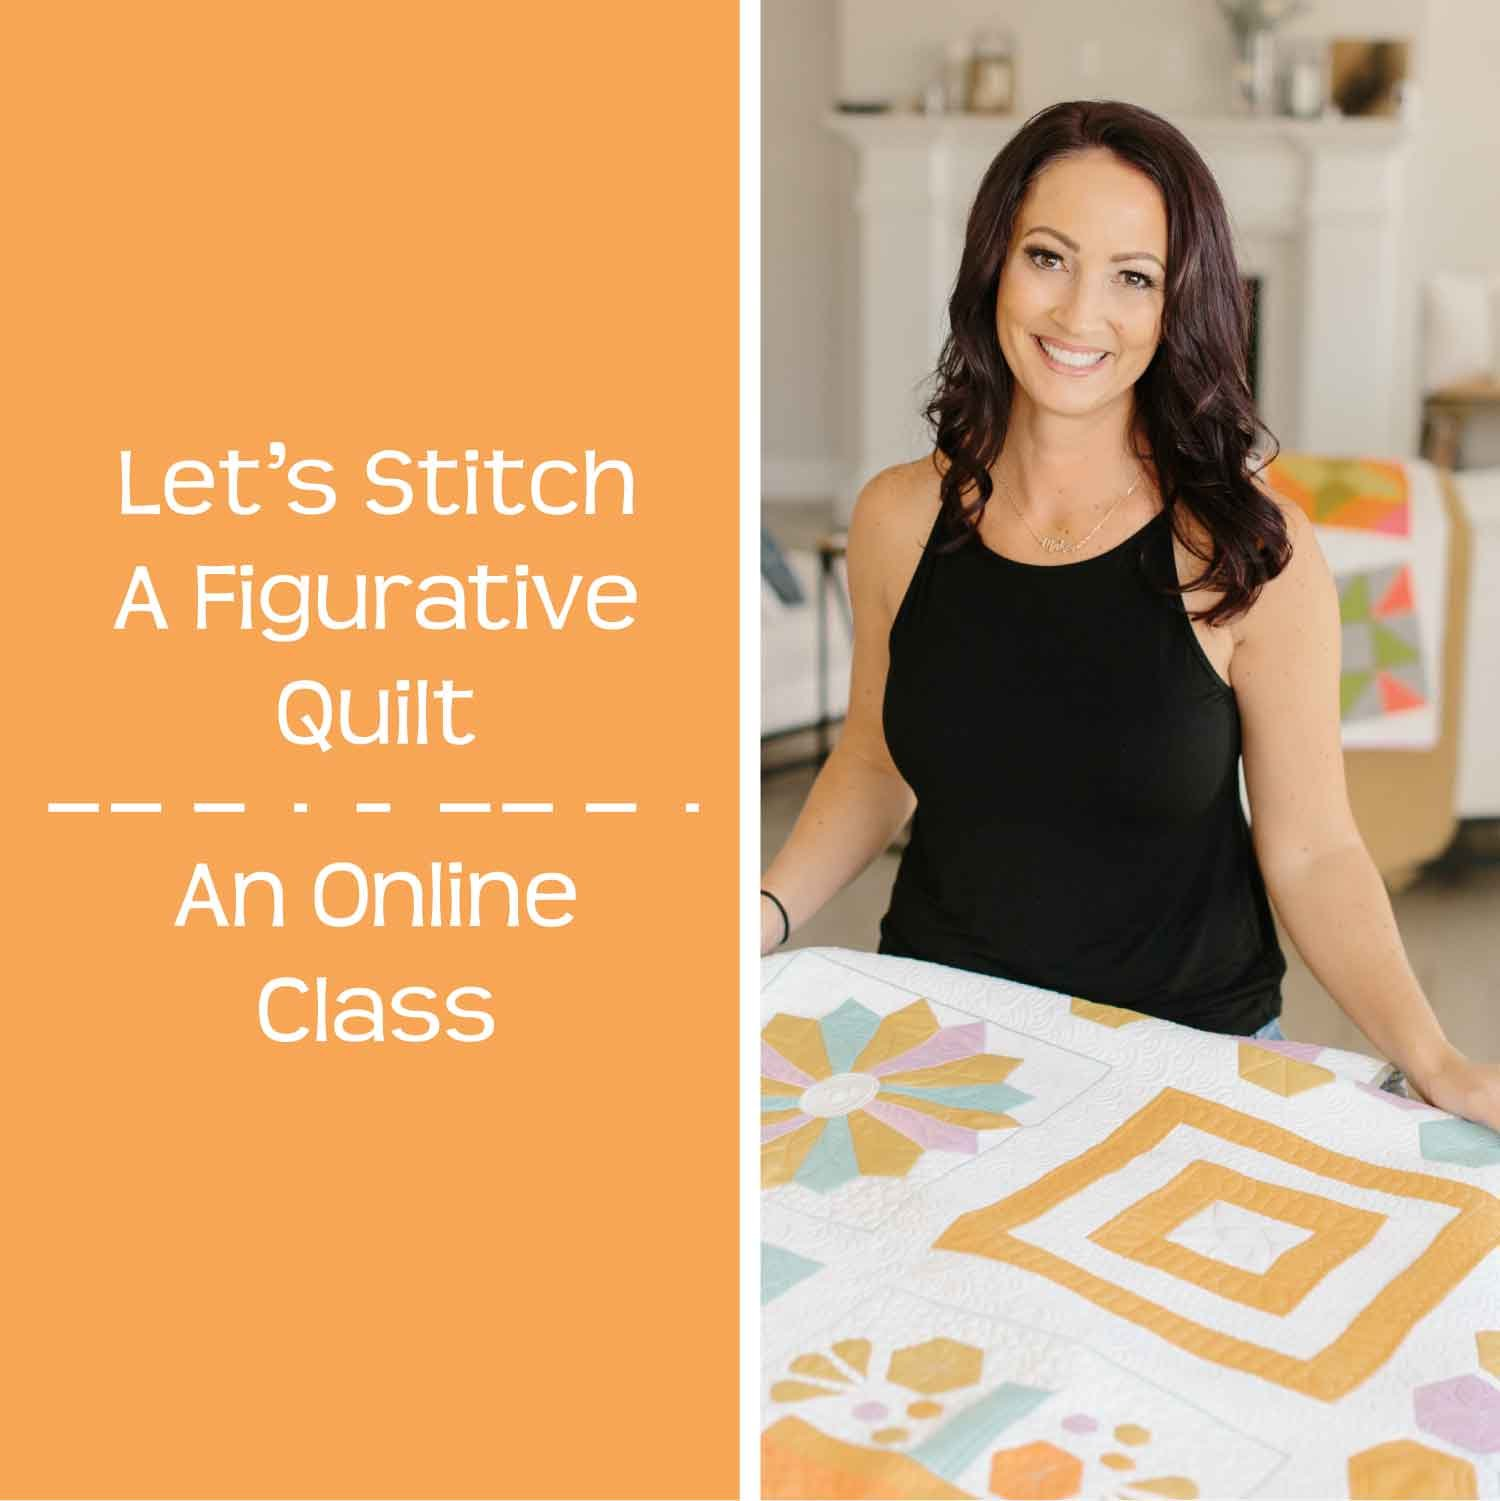 Let's Stitch A Figurative Quilt - CLASS ONLY